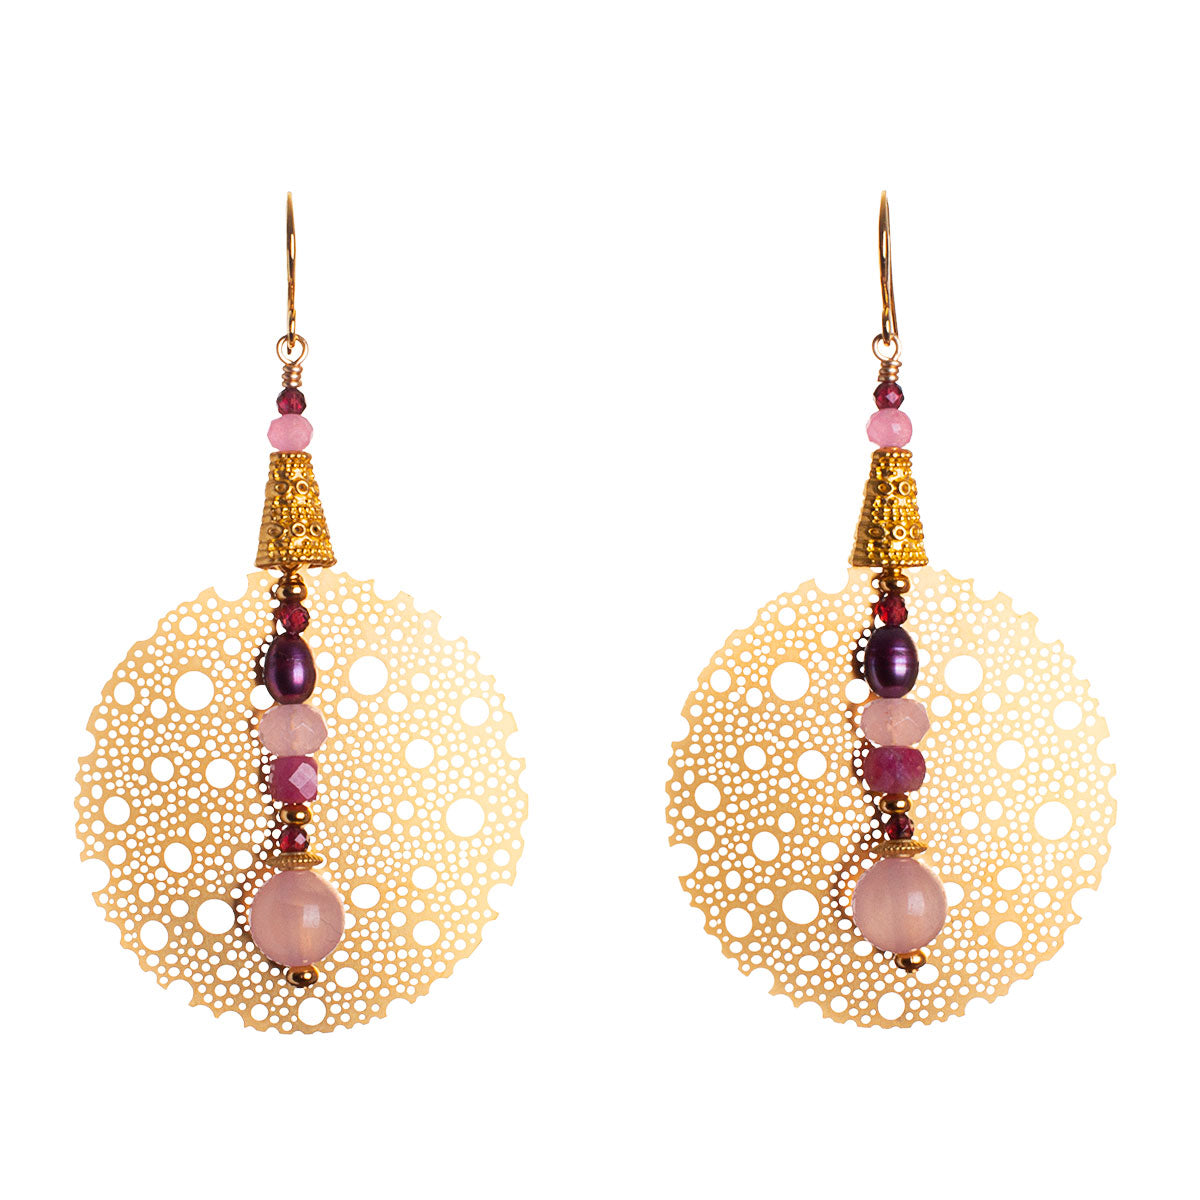 N°643 The Gentle Coordinates of Rose Quartz & Tourmaline Statement Earrings